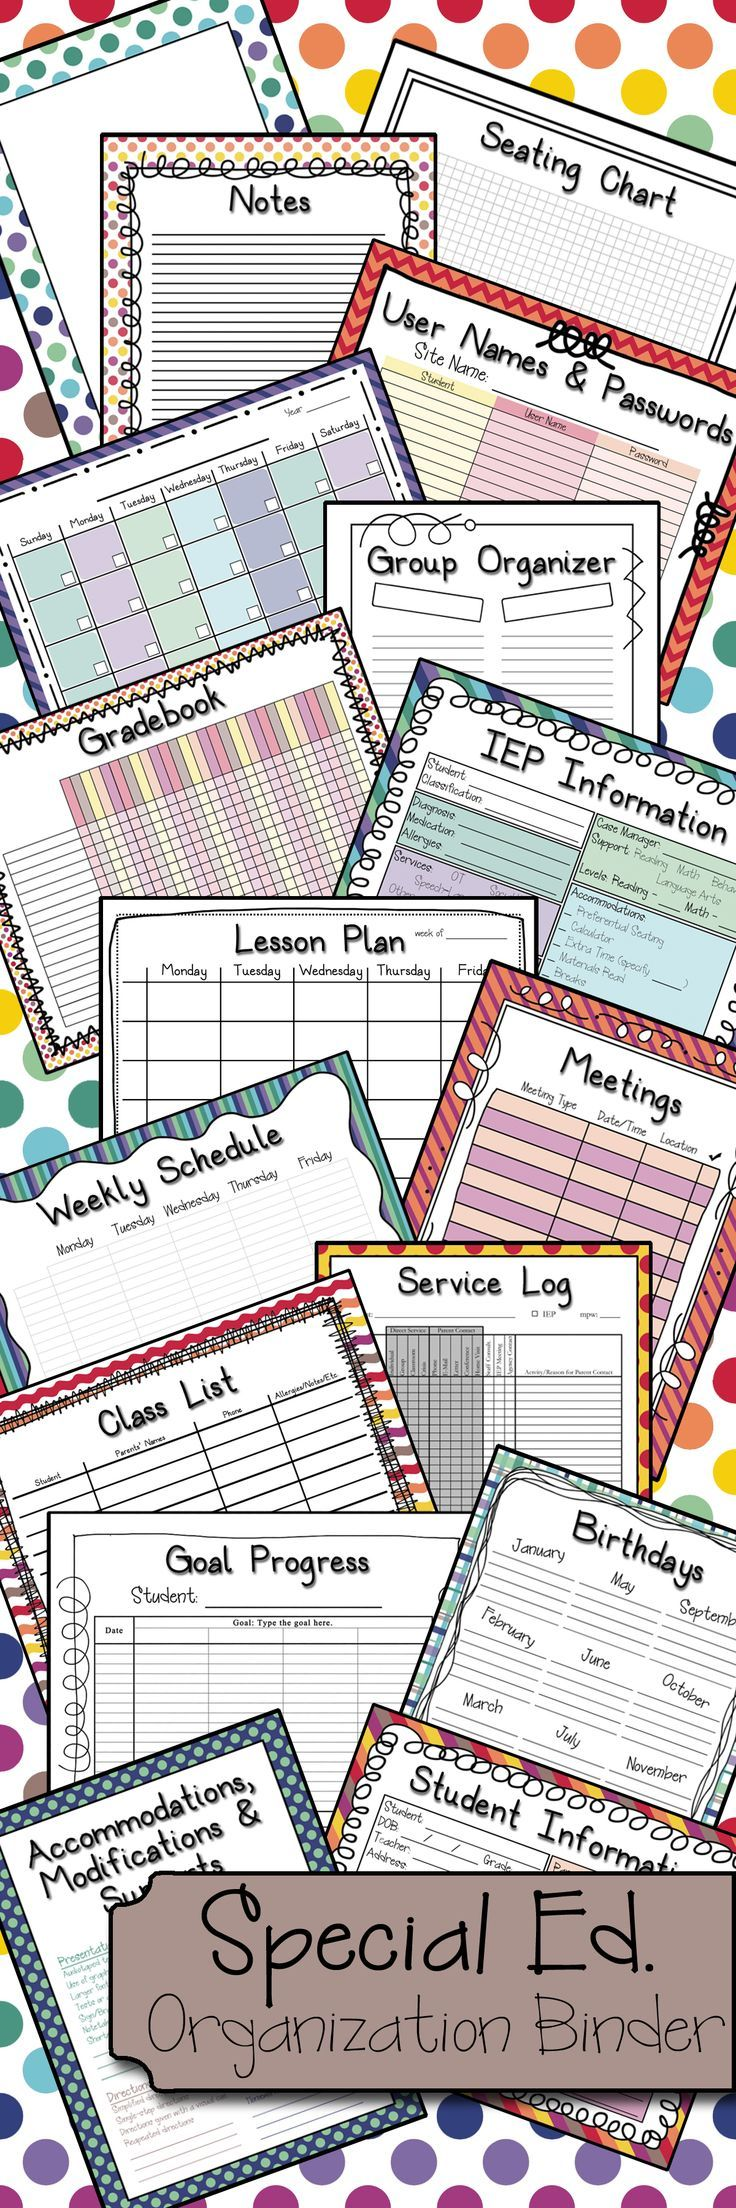 For my special ed teacher friends  This download includes over 80 pages to help you organize the mounds of special ed. paperwork we all seem to accumulate.   Includes Group Organizer, IEP Dates Tracker, IEP Service Log, Lesson Planning Sheets, IEP Information Page, Seating Chart, Meeting Organizer, IEP Accommodations Cheat Sheet, as well as coordinating blank pages, cool-colored, or combo theme!